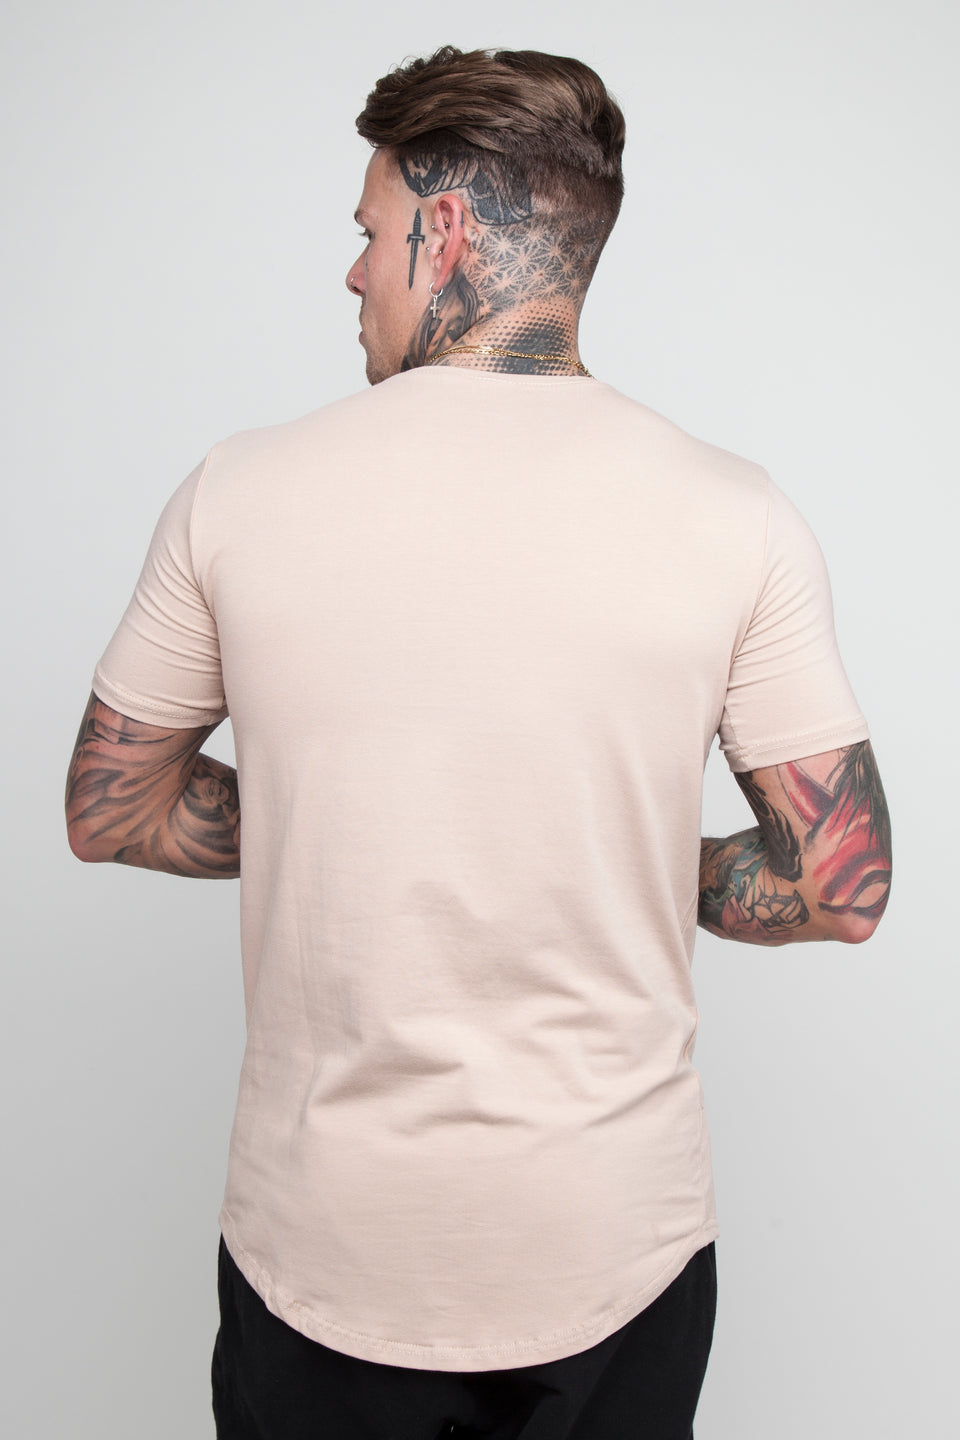 Vypex® Ascend Men's Tapered Fitted Gym T-Shirt In Sand beige